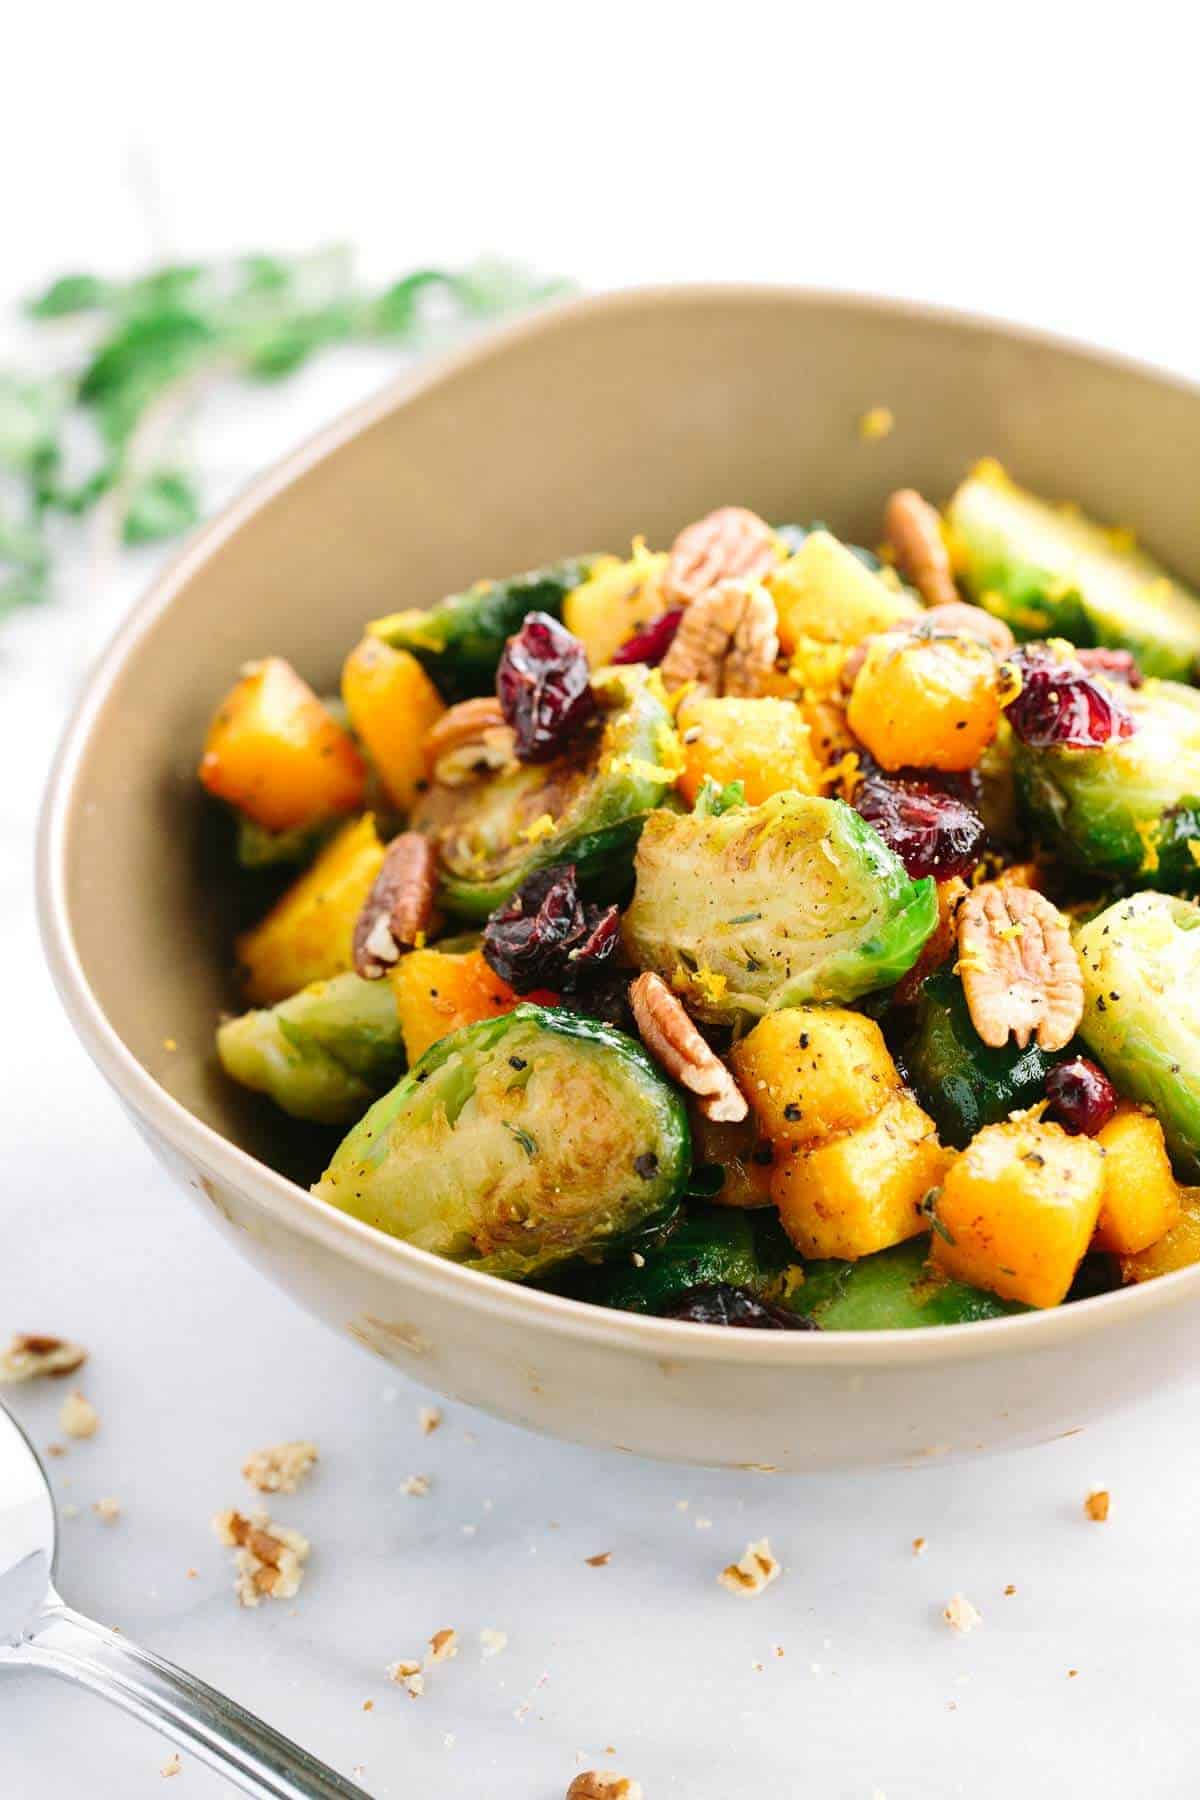 Honey Orange Glazed Brussels Sprouts with Butternut Squash - A delicious and easy recipe tossed with sweet tangy sauce, cranberries and crunchy pecans | jessicagavin.com